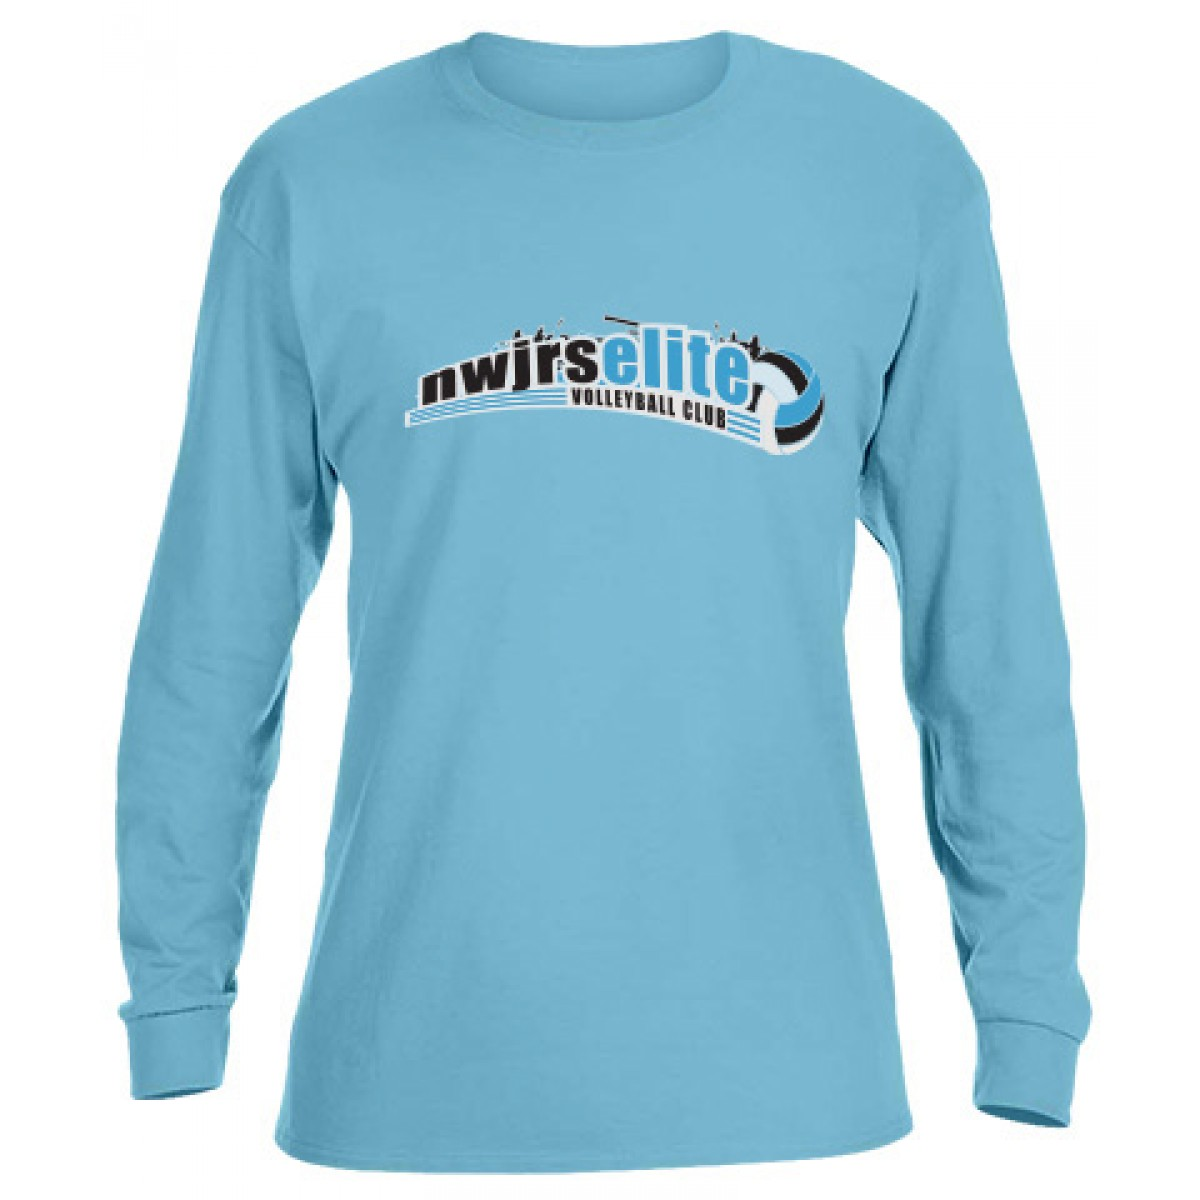 Northwest Volleyball Foundation Scholarship Program-Sky Blue-3XL